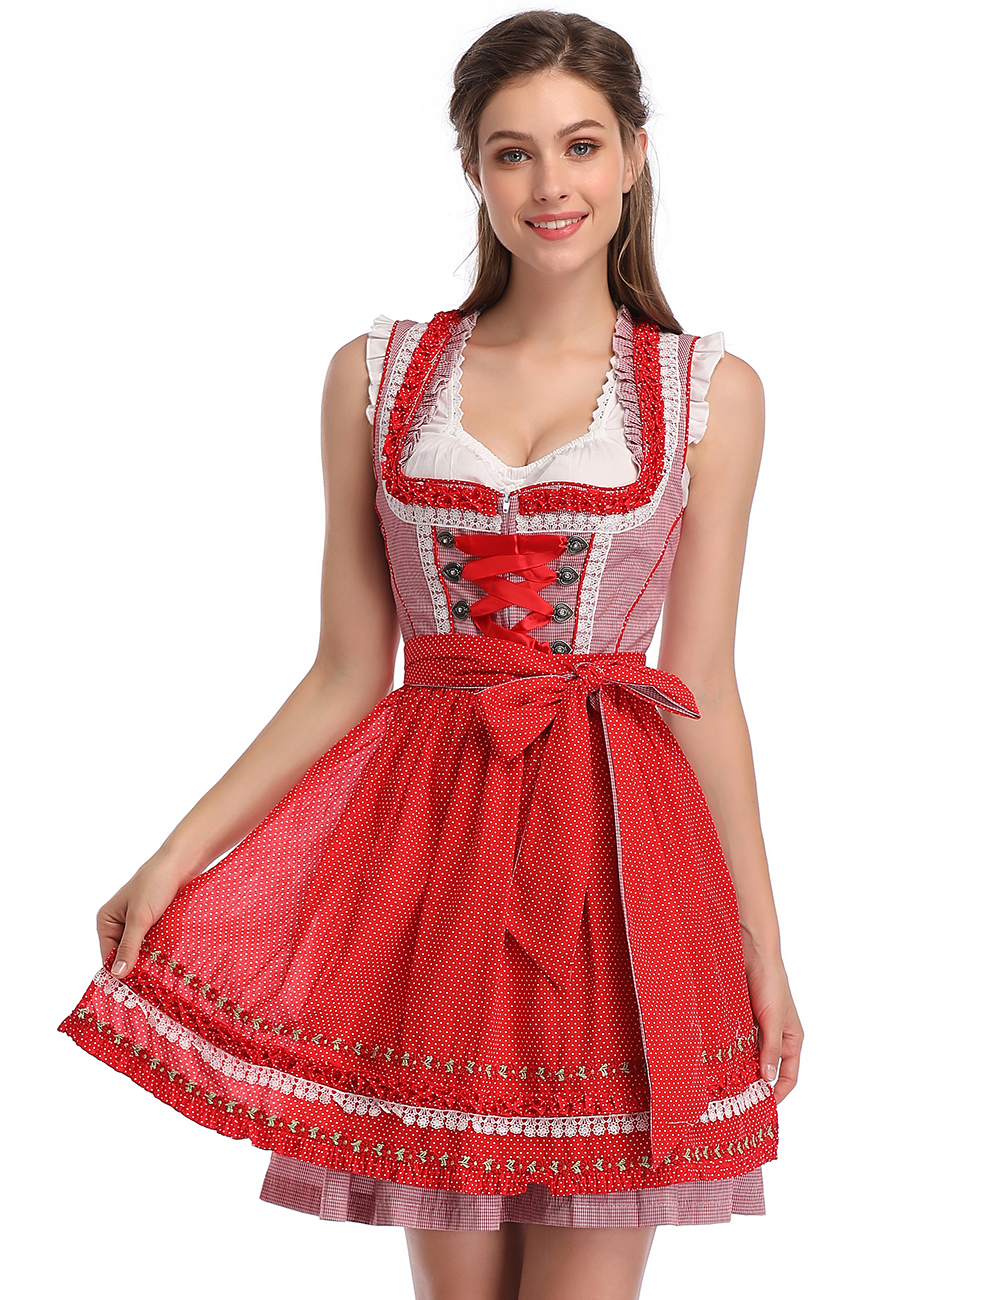 KOJOOIN Women's German Dirndl Dress Costumes Set for Bavarian Oktoberfest Halloween Carnival